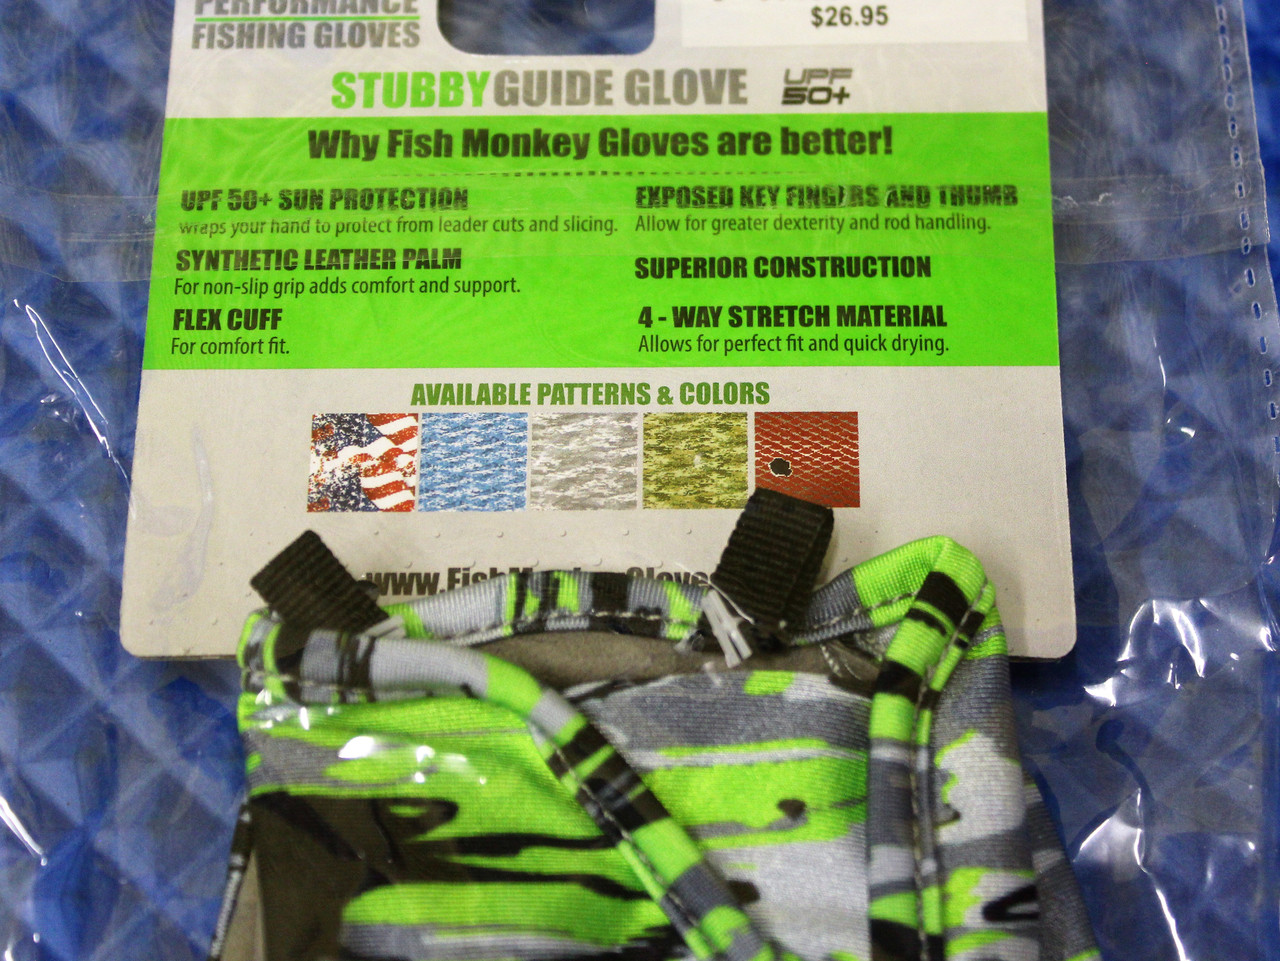 Fish Monkey Stubby Guide Glove FM18-VSG- CHOOSE YOUR SIZE!